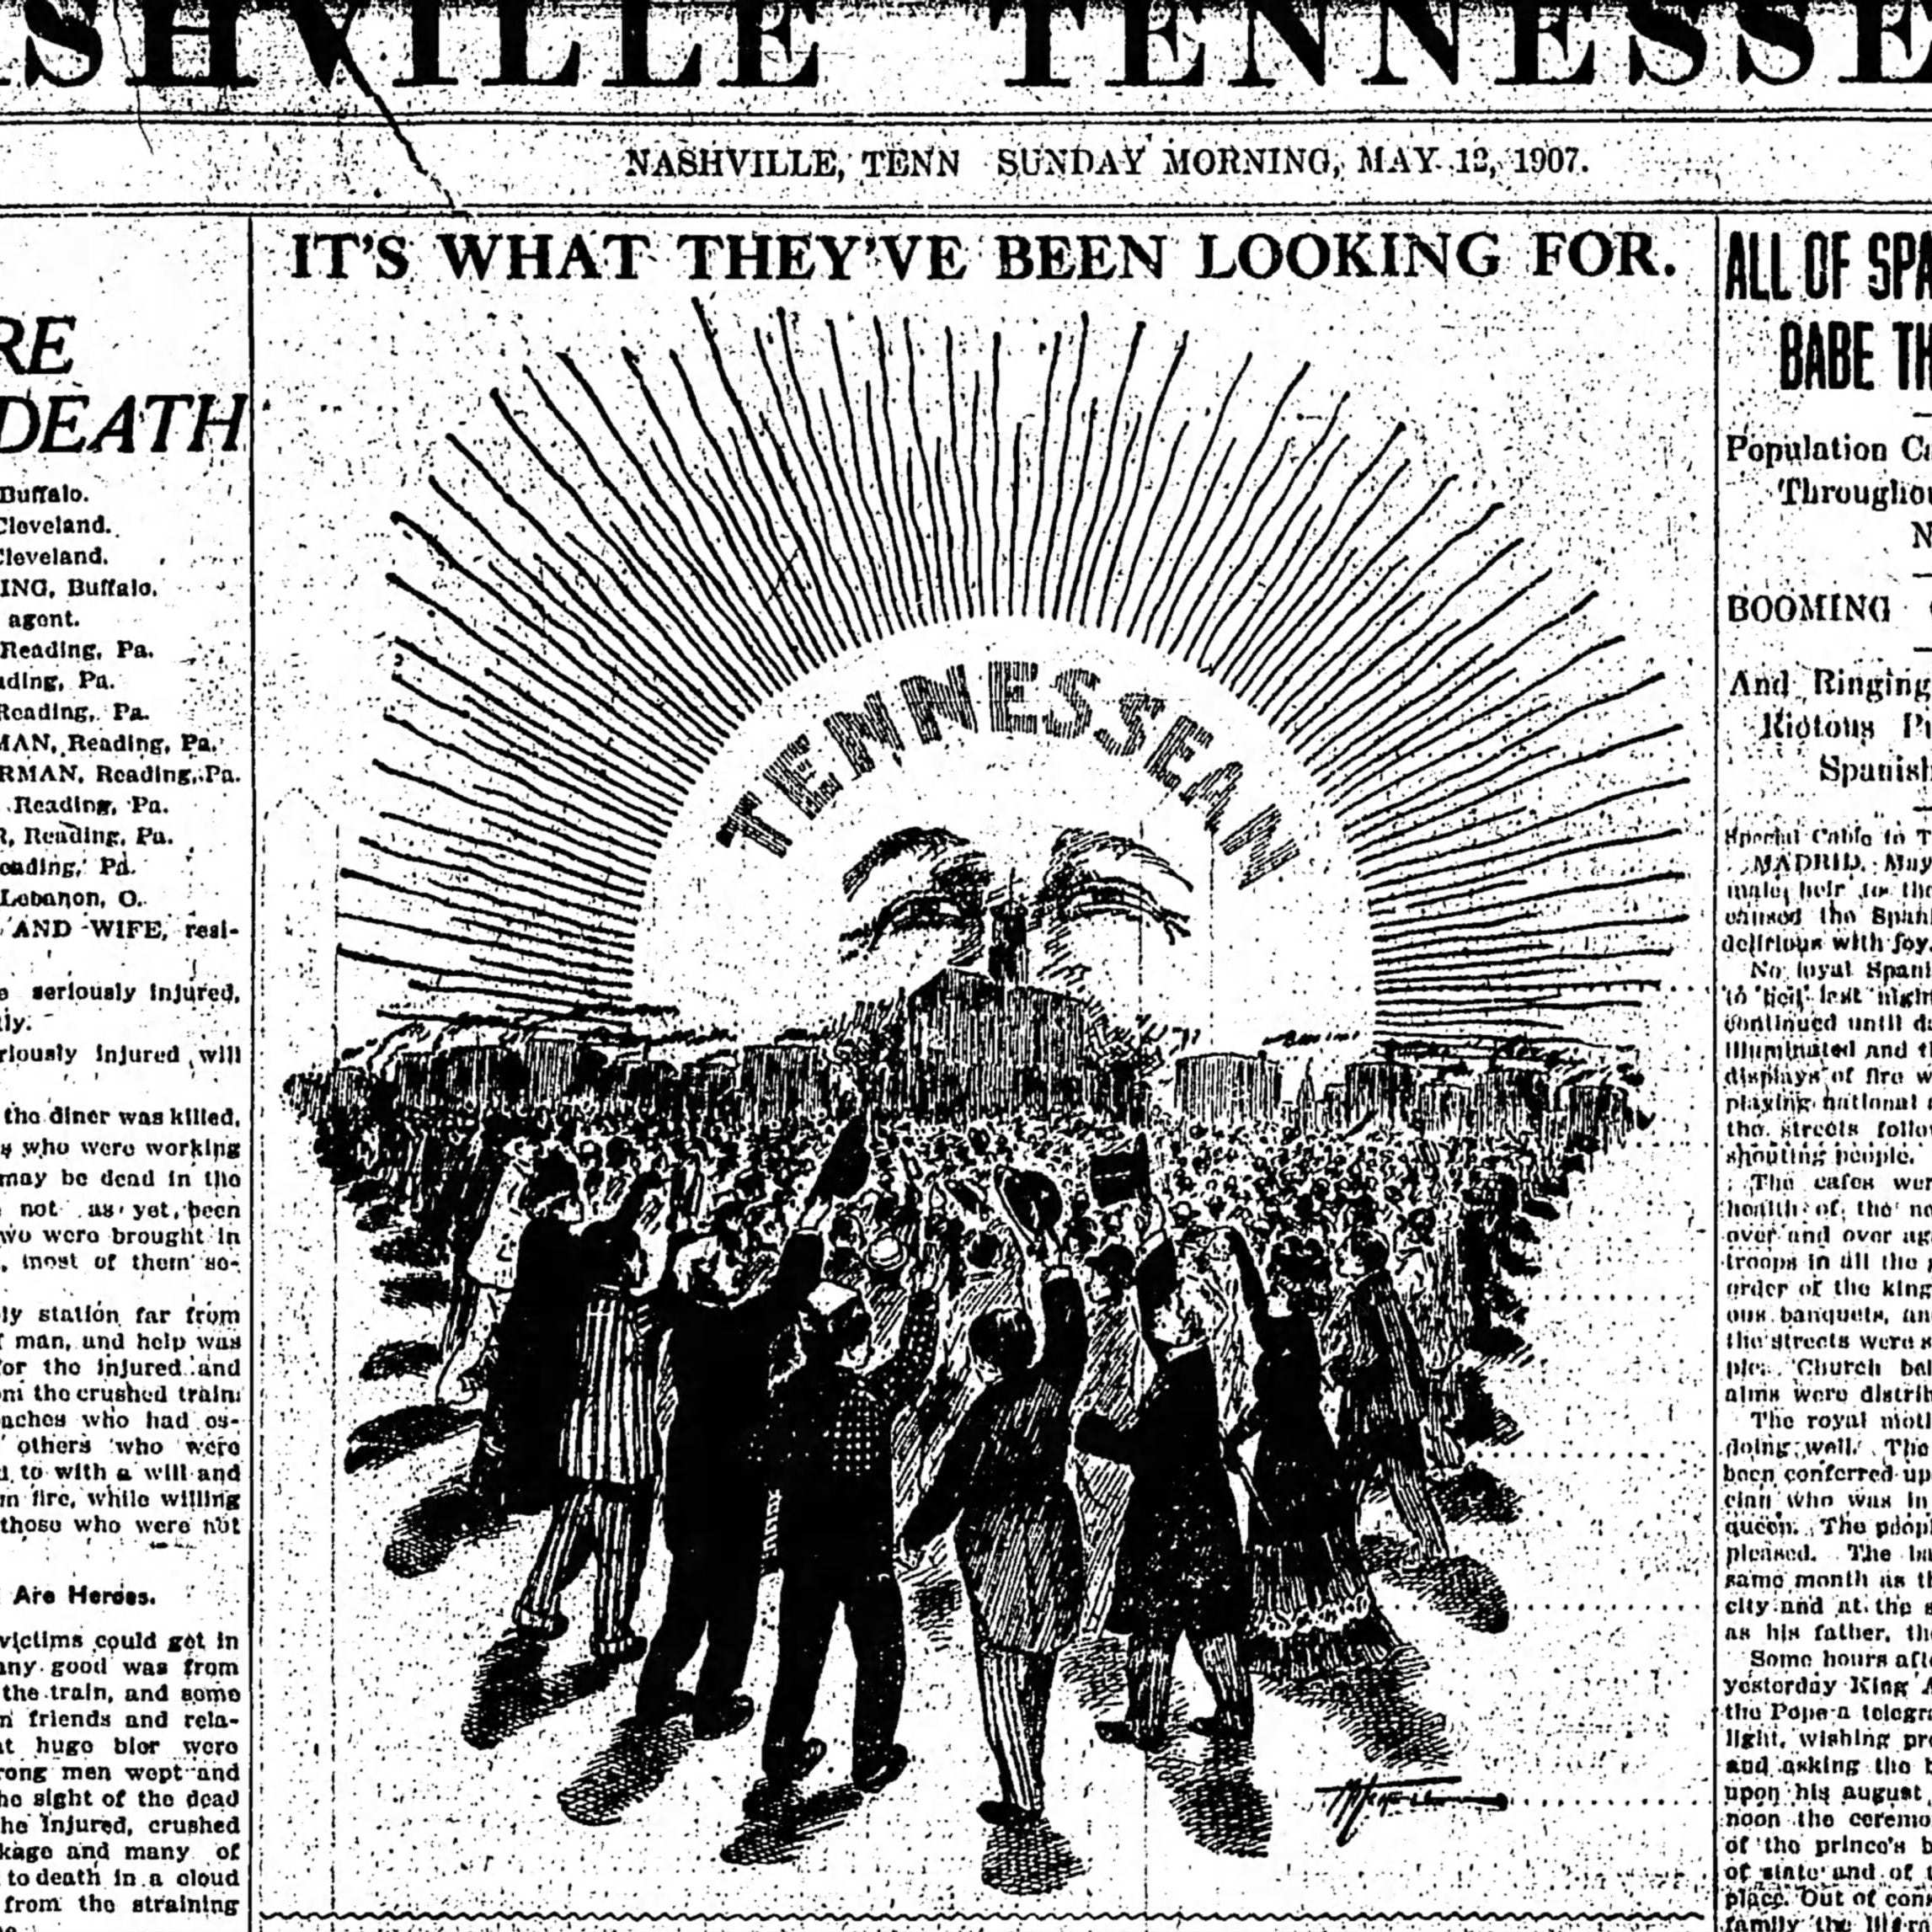 'What they've been looking for': A look at The Tennessean's past